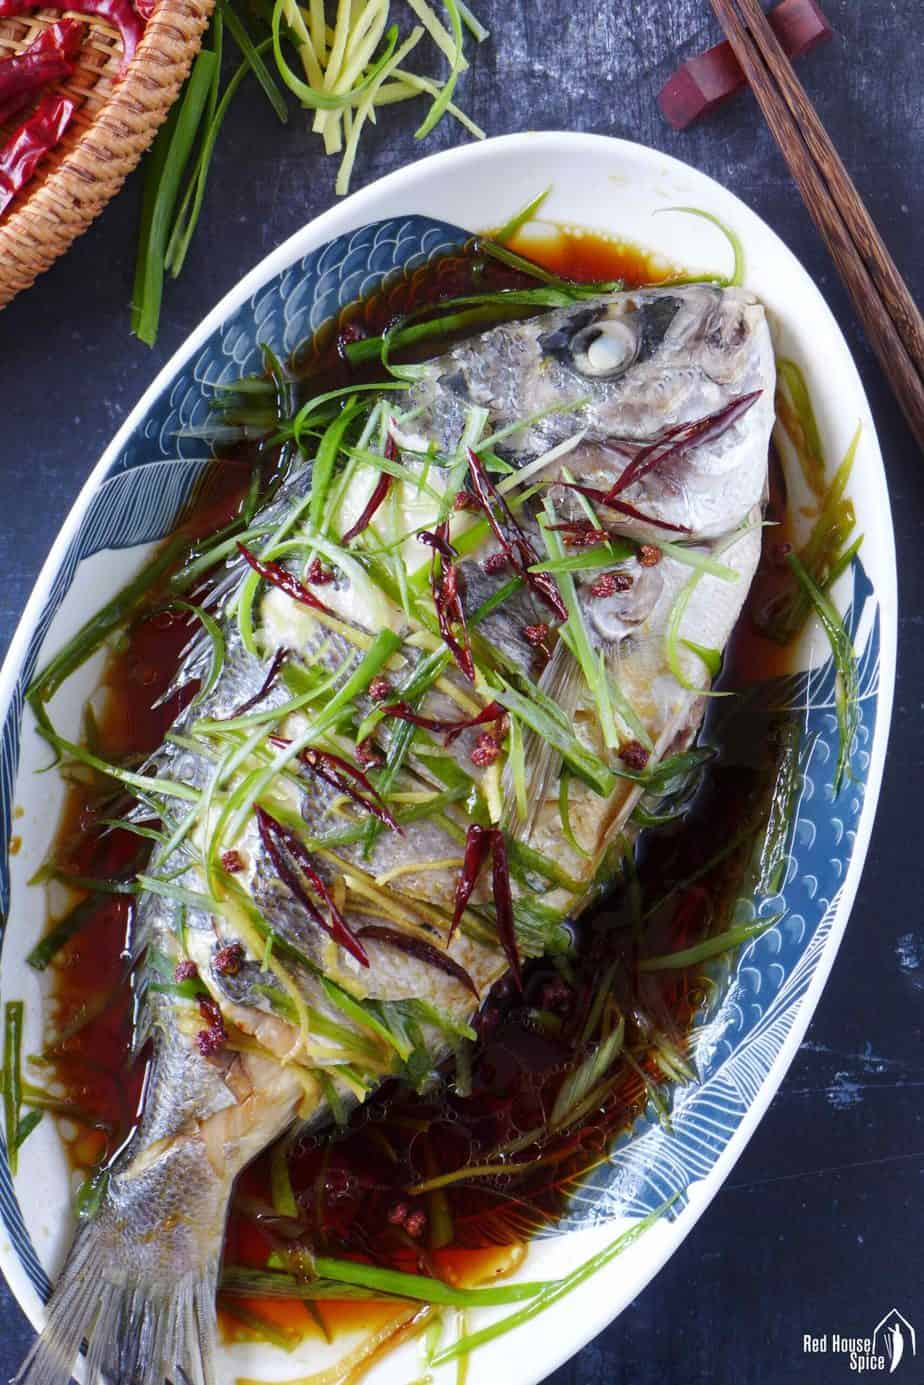 Chinese steamed fish in a plate